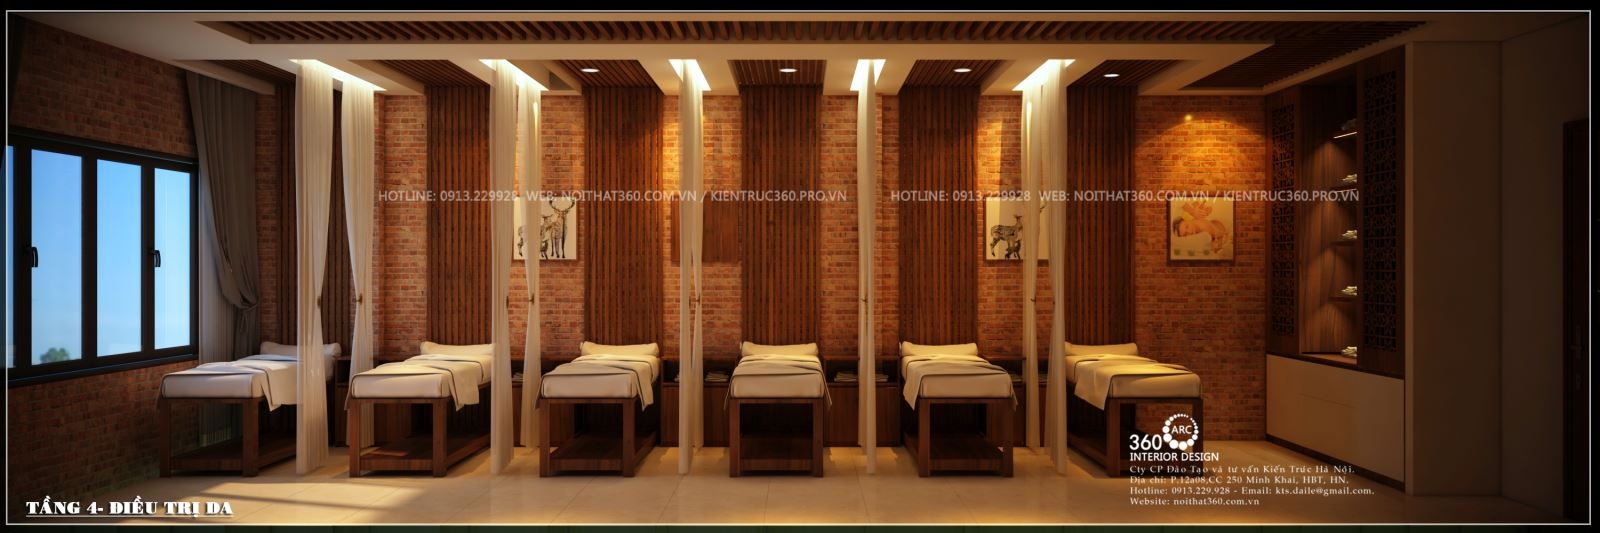 Thiet-ke-noi-that-spa-Alina